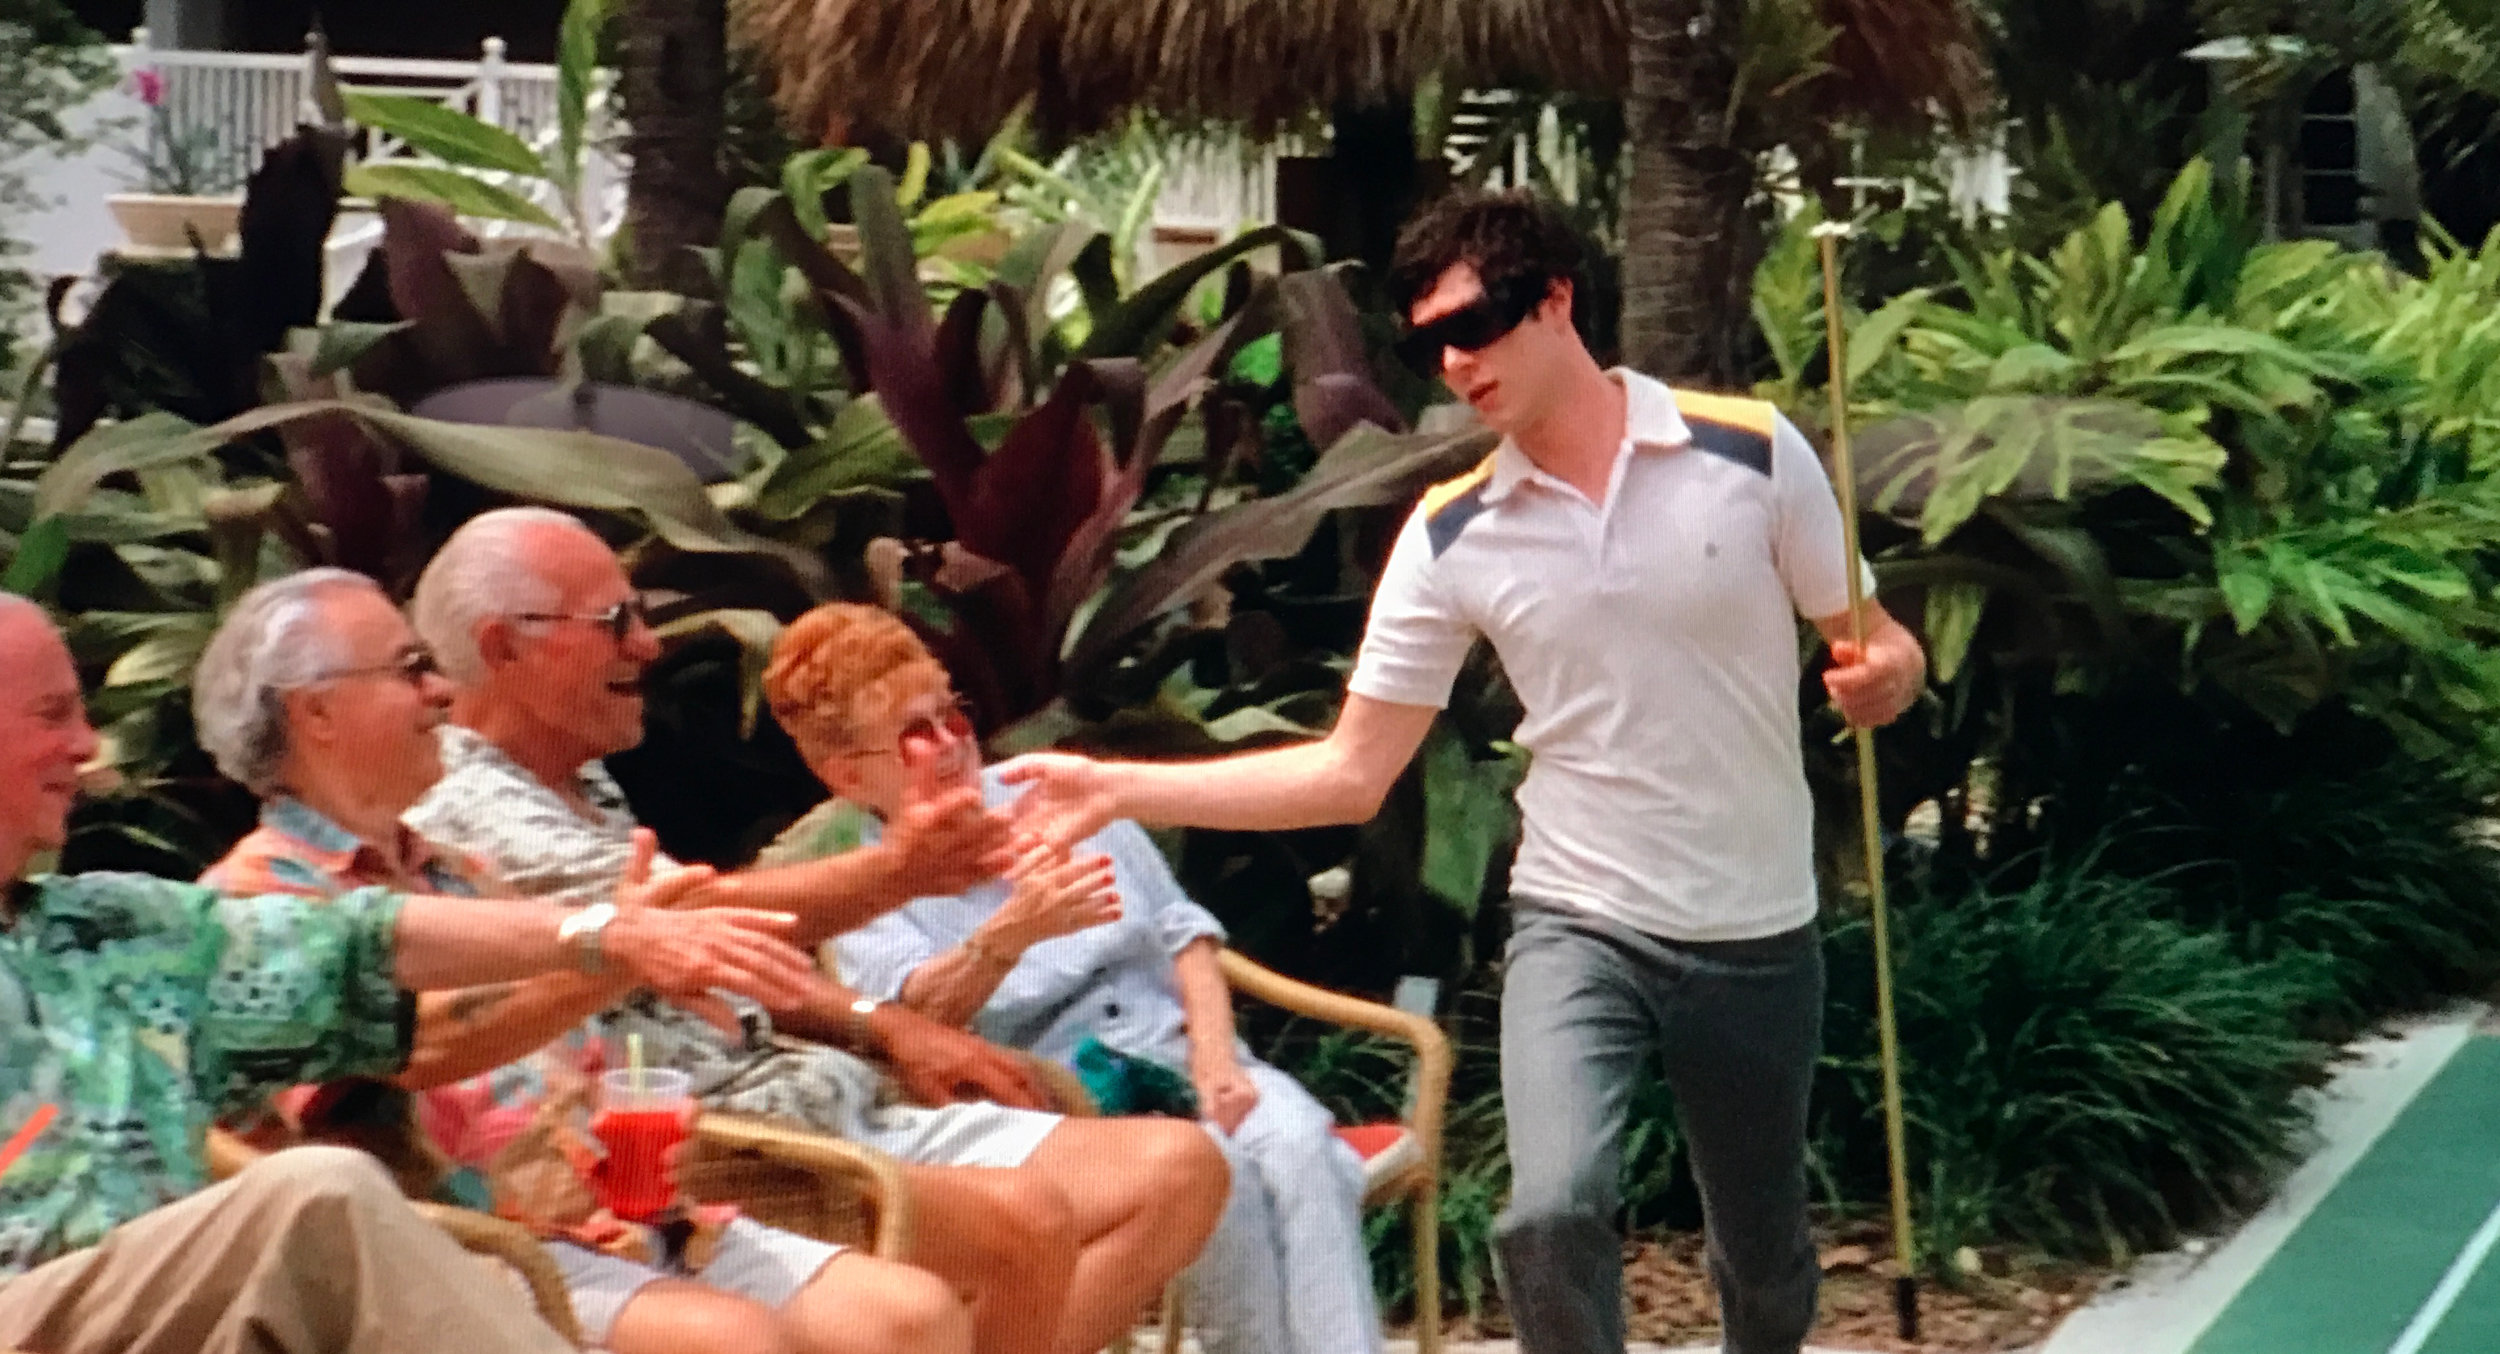 Seth Cohen playing shuffleboard with his Miami friends in The OC Season 2, Episode 21,  The Return of the Nana .